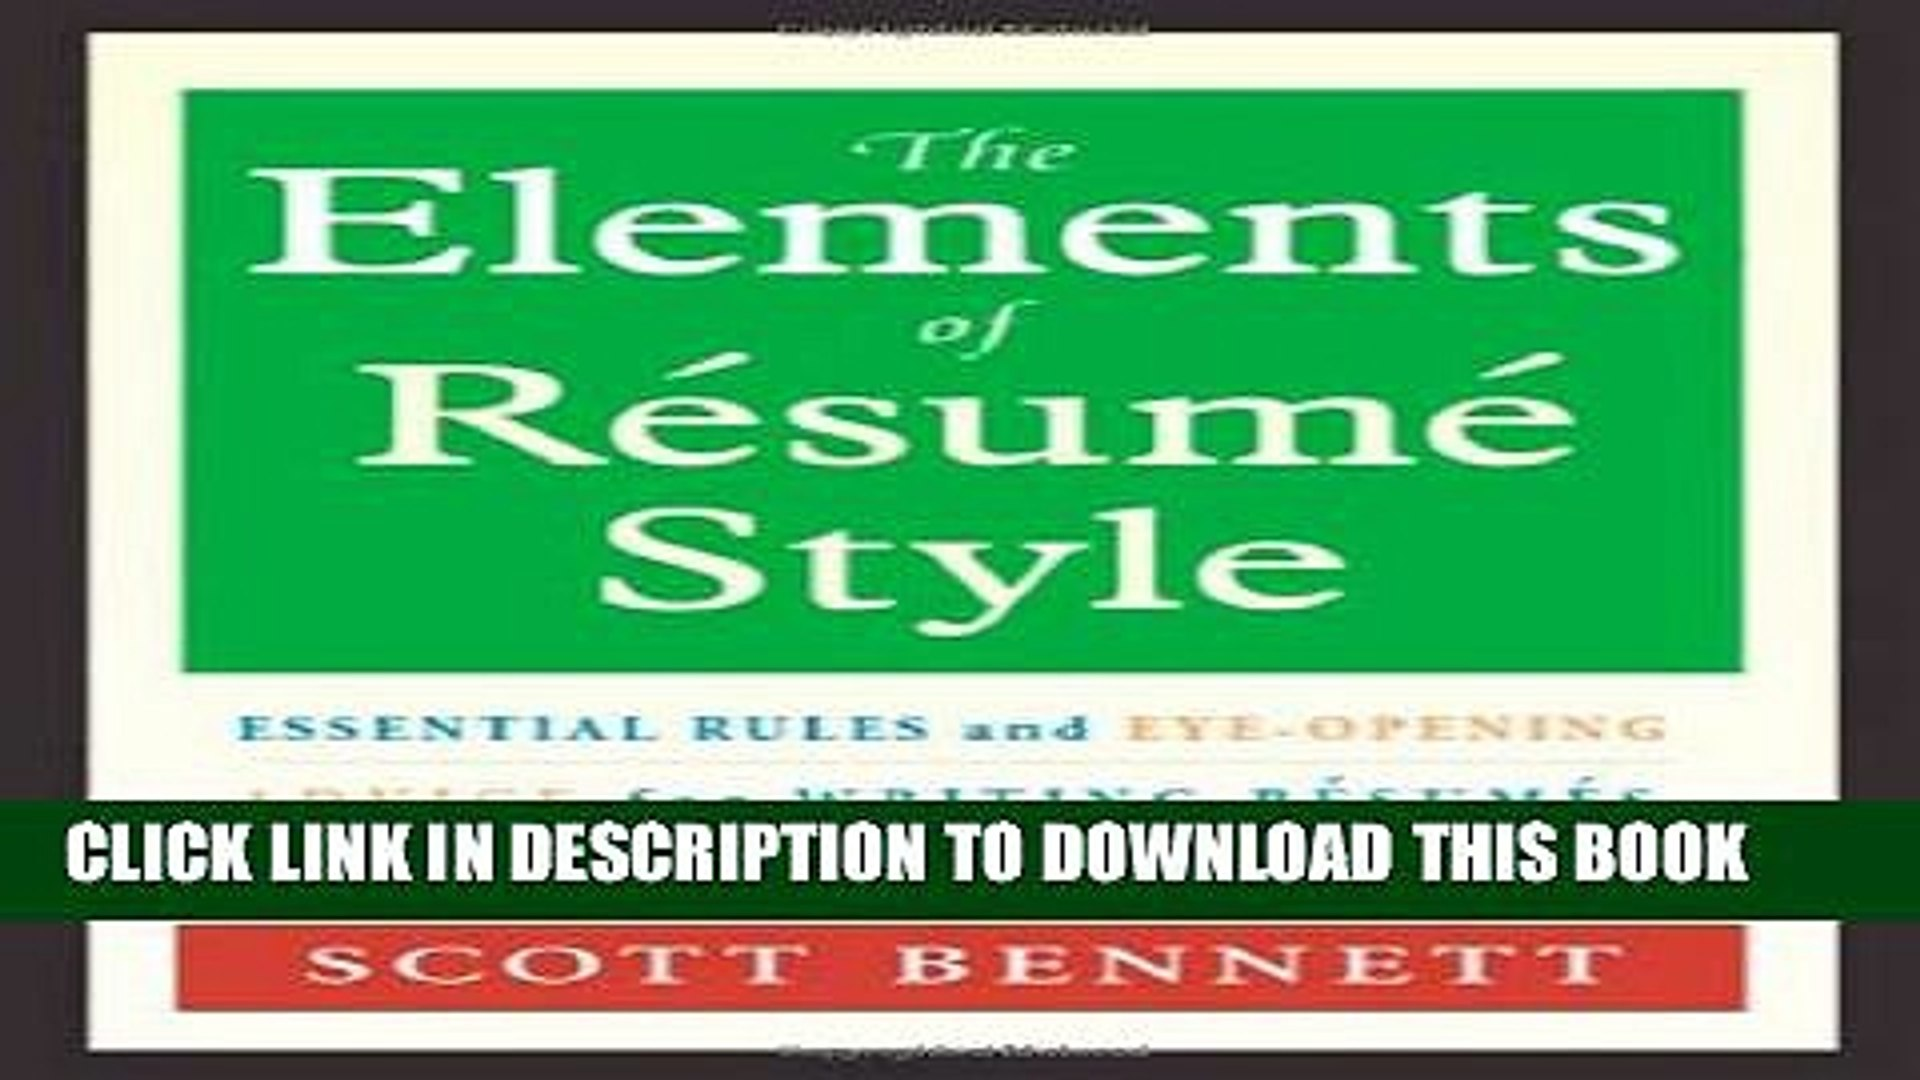 pdf the elements of resume style essential rules and eye opening advice for writing Resume Elements Of Resume Style